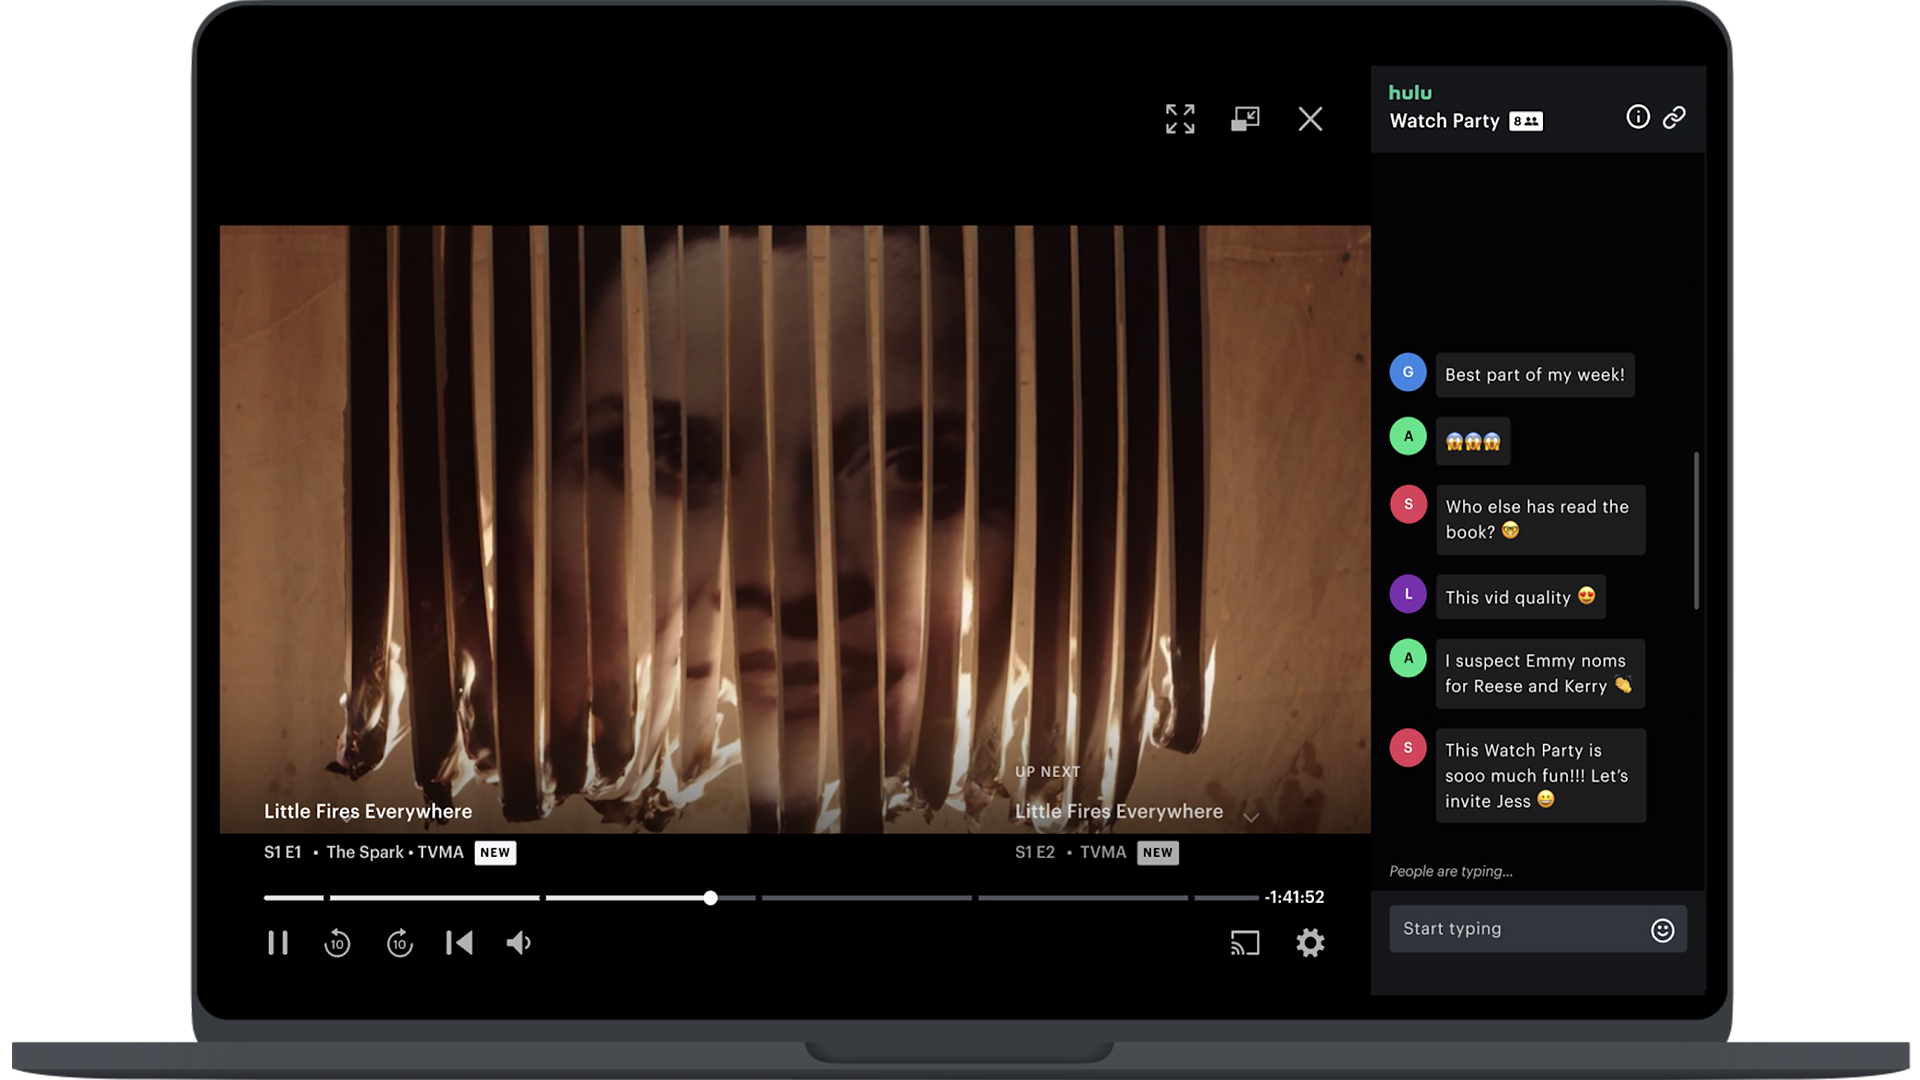 Hulu Video Player with Ad